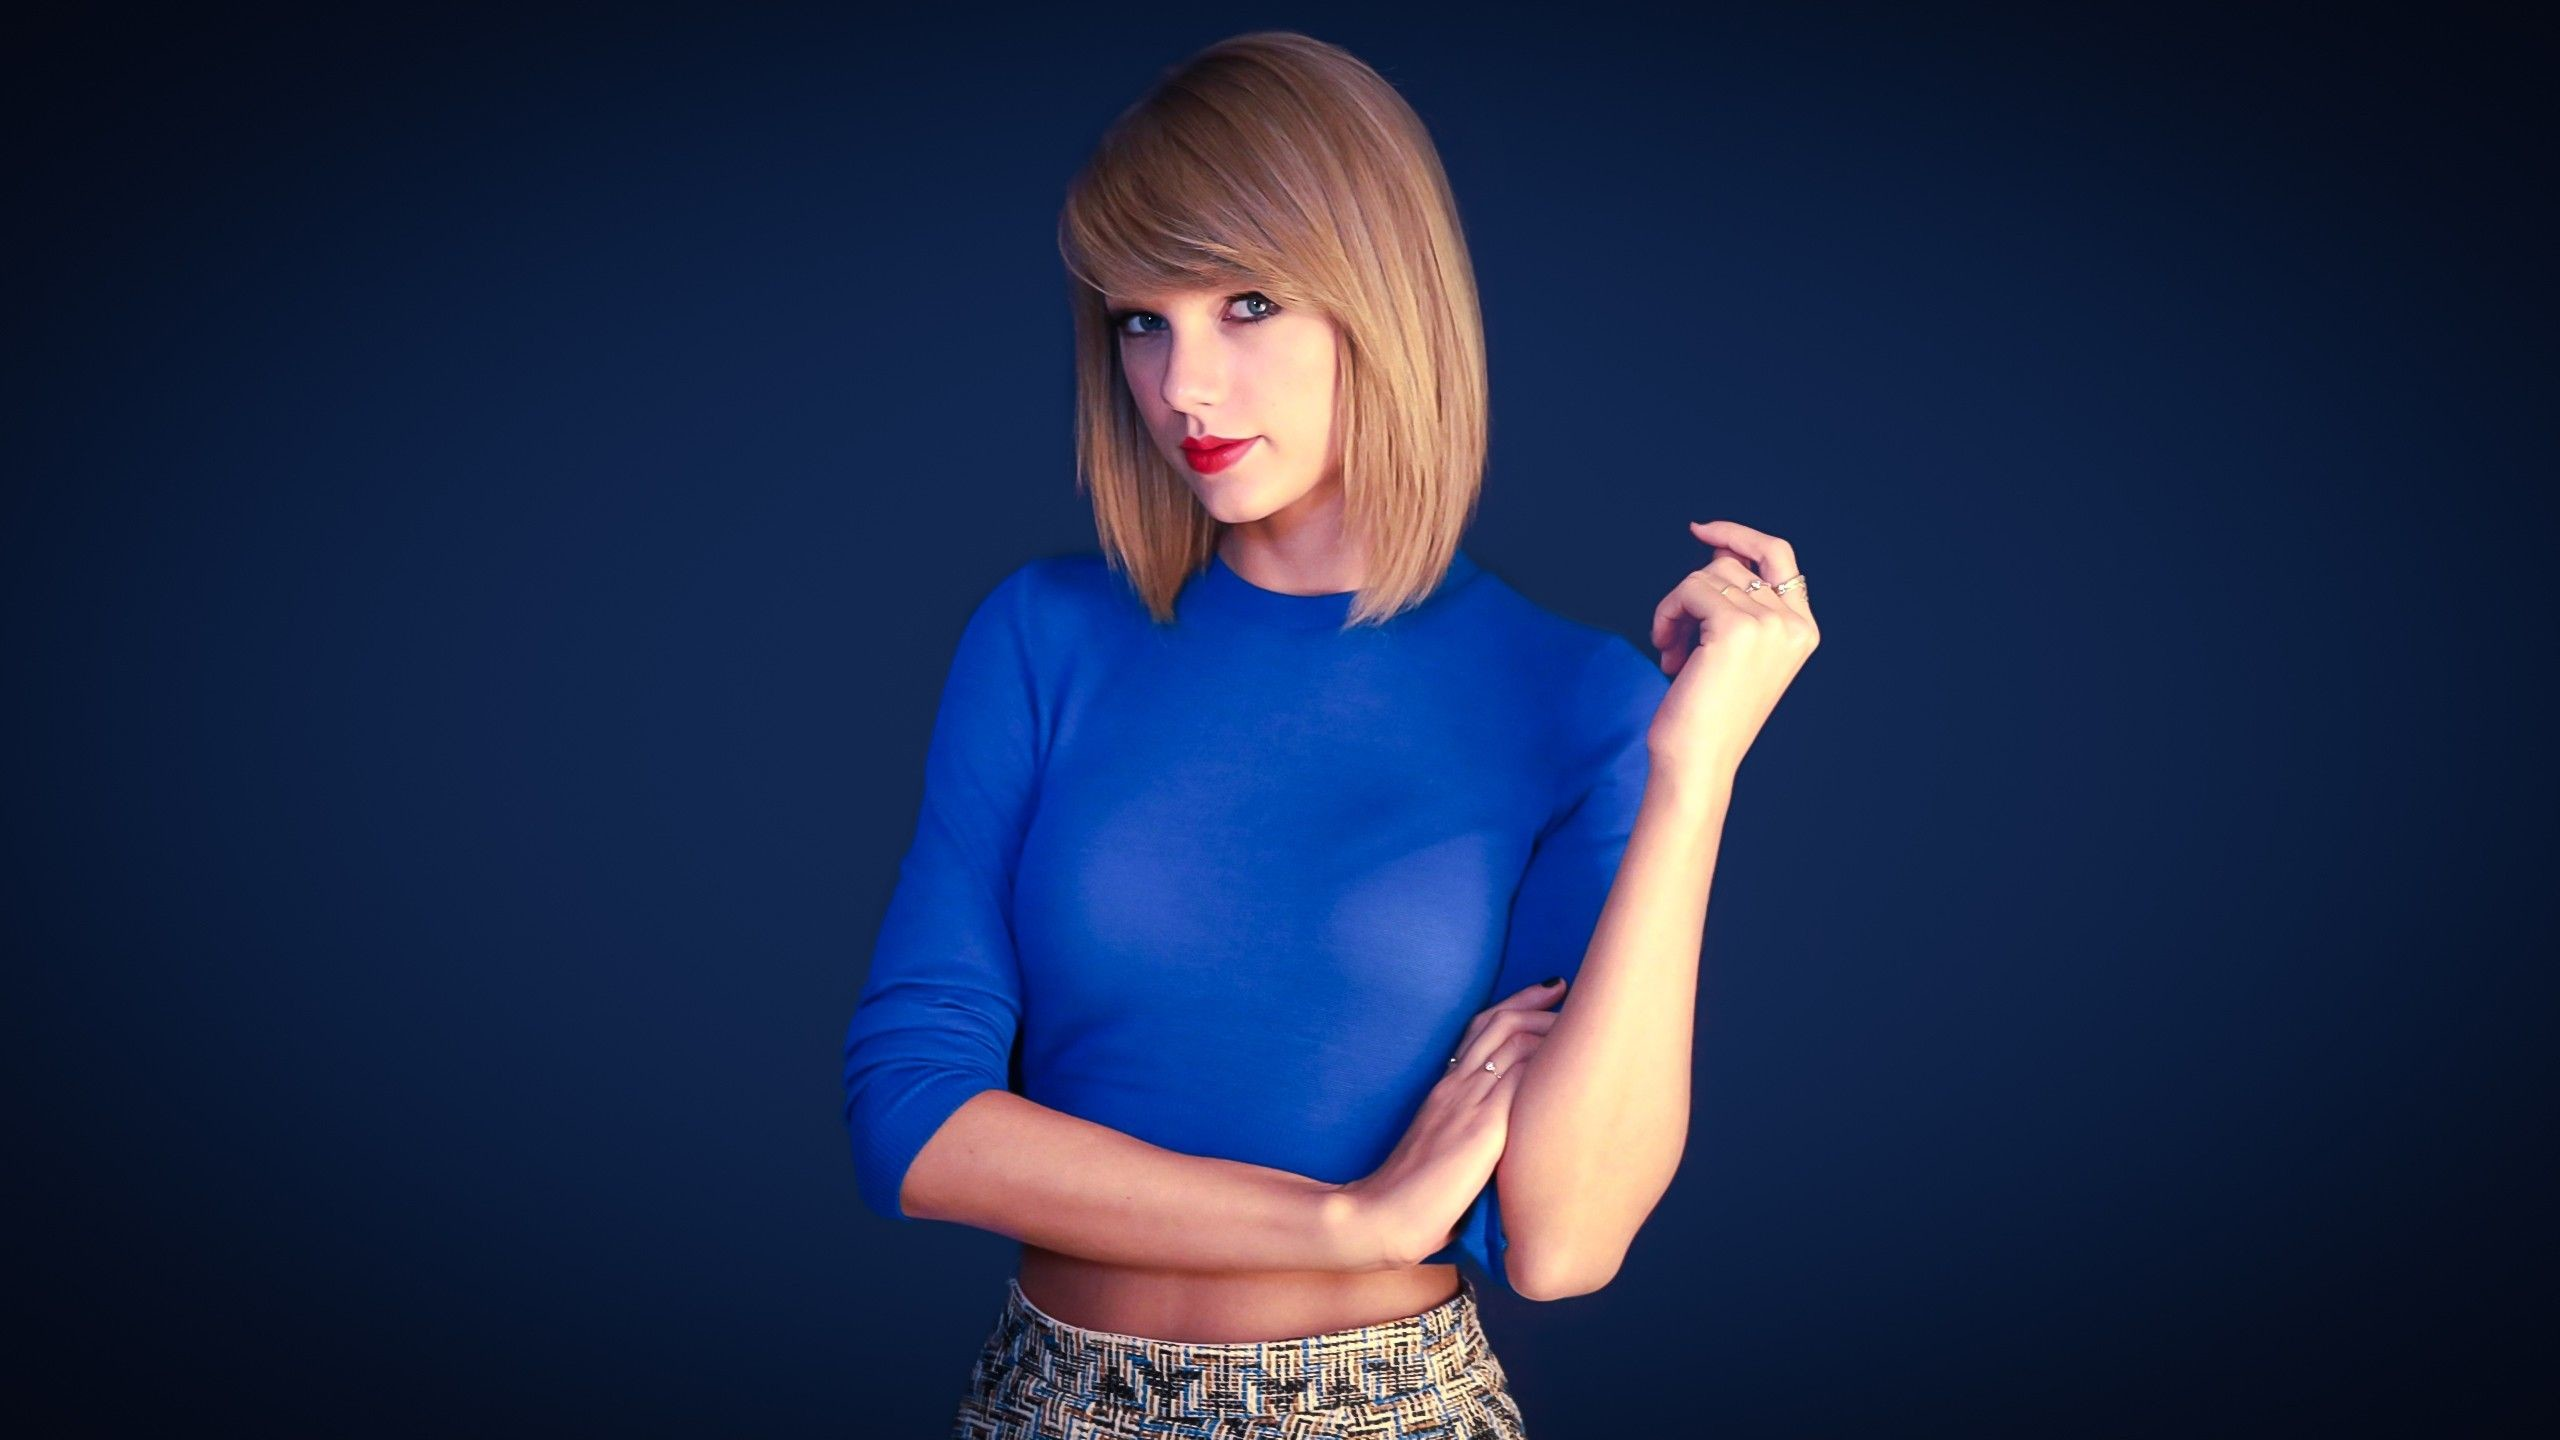 Pictures Of Taylor Swift Phone. Taylor Swift Phone Wallpaper by Maximilien  Lared, GoldWallpapers.com. 0.149 MB